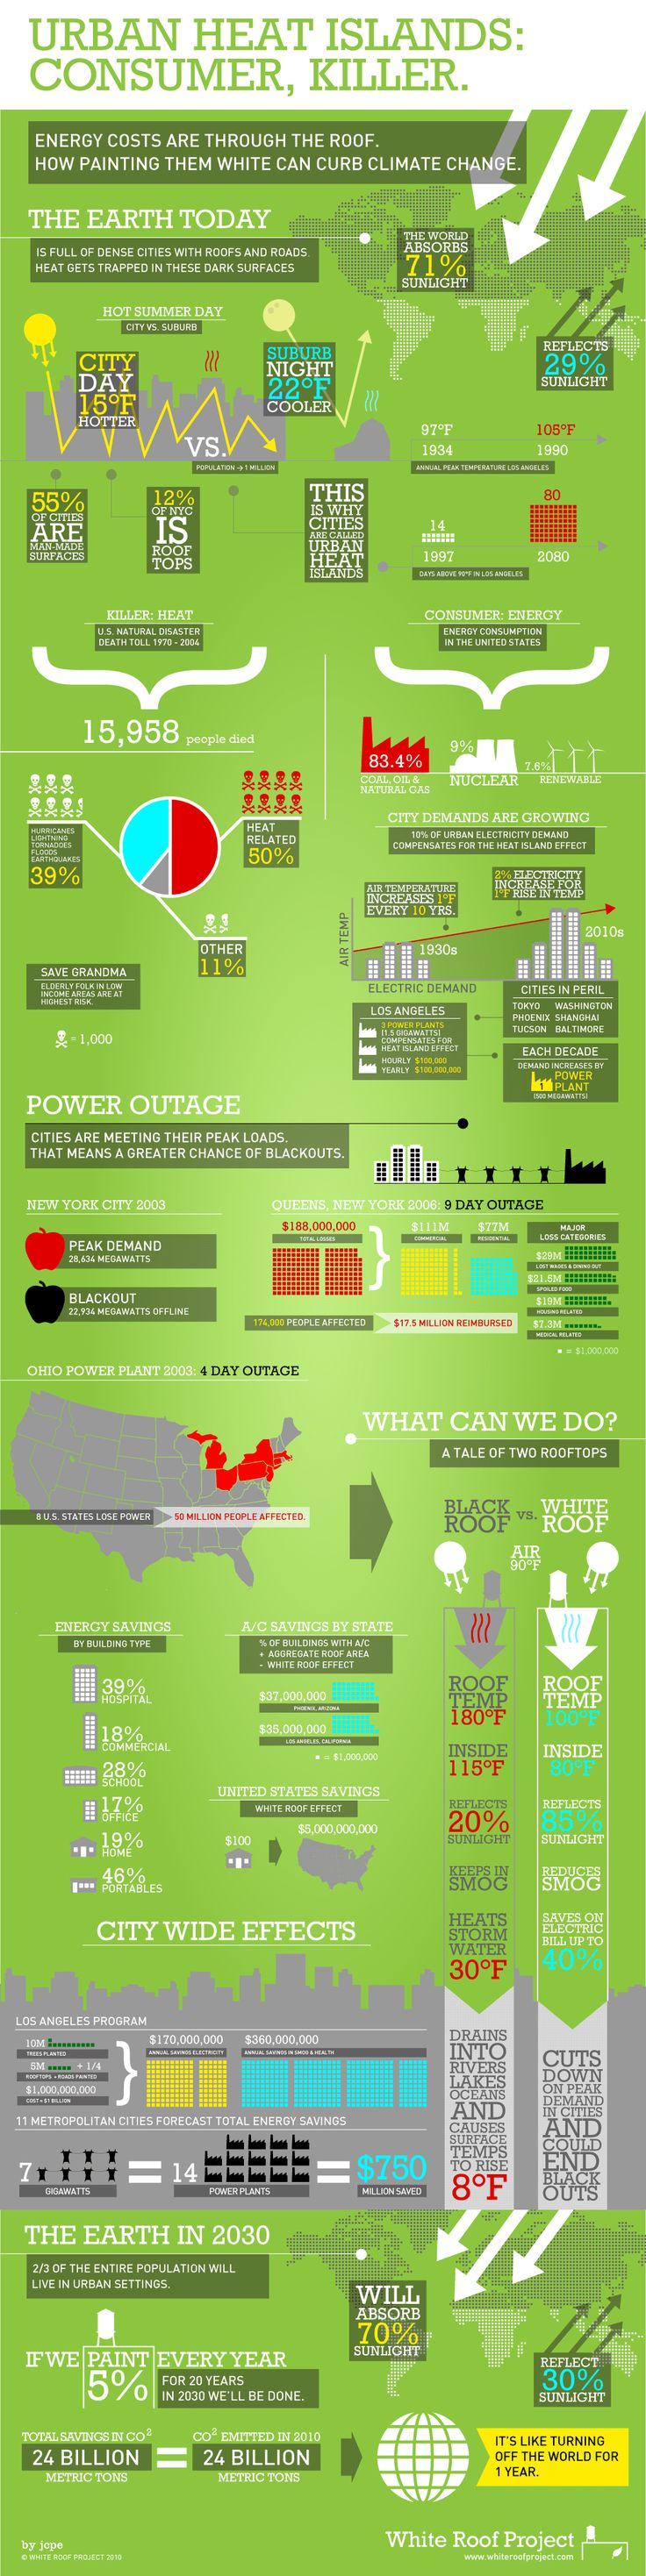 Infographic about energy! Black Roofs VS White Roofs